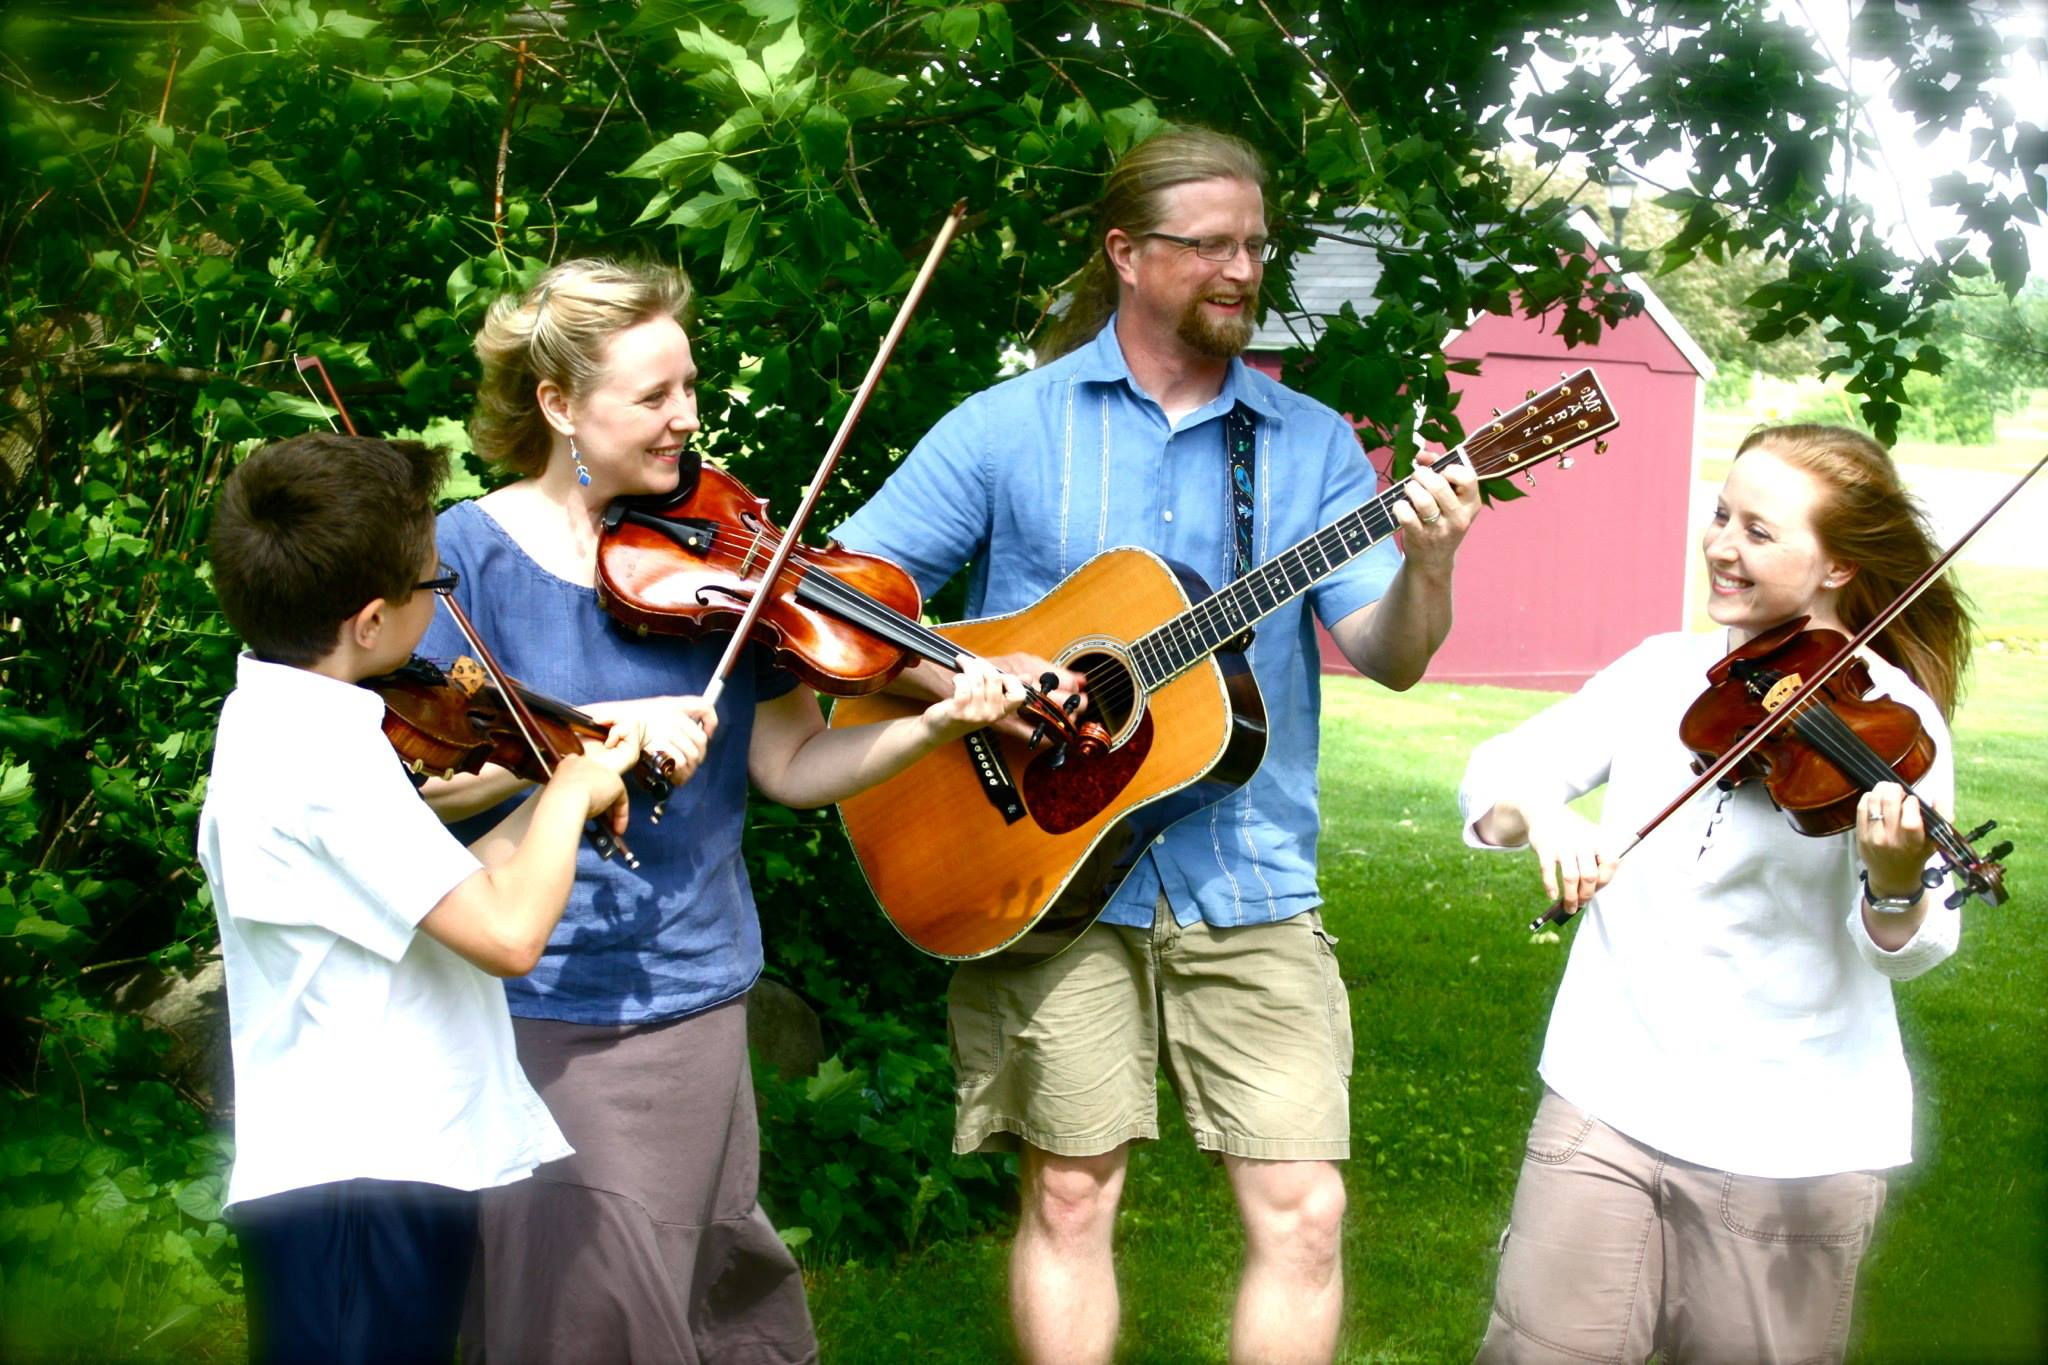 Gretchen & Rebecca Koehler surrounded by family, Sylvain Koehler Foisy (fiddle), and Brandt Kronholm (guitar.)